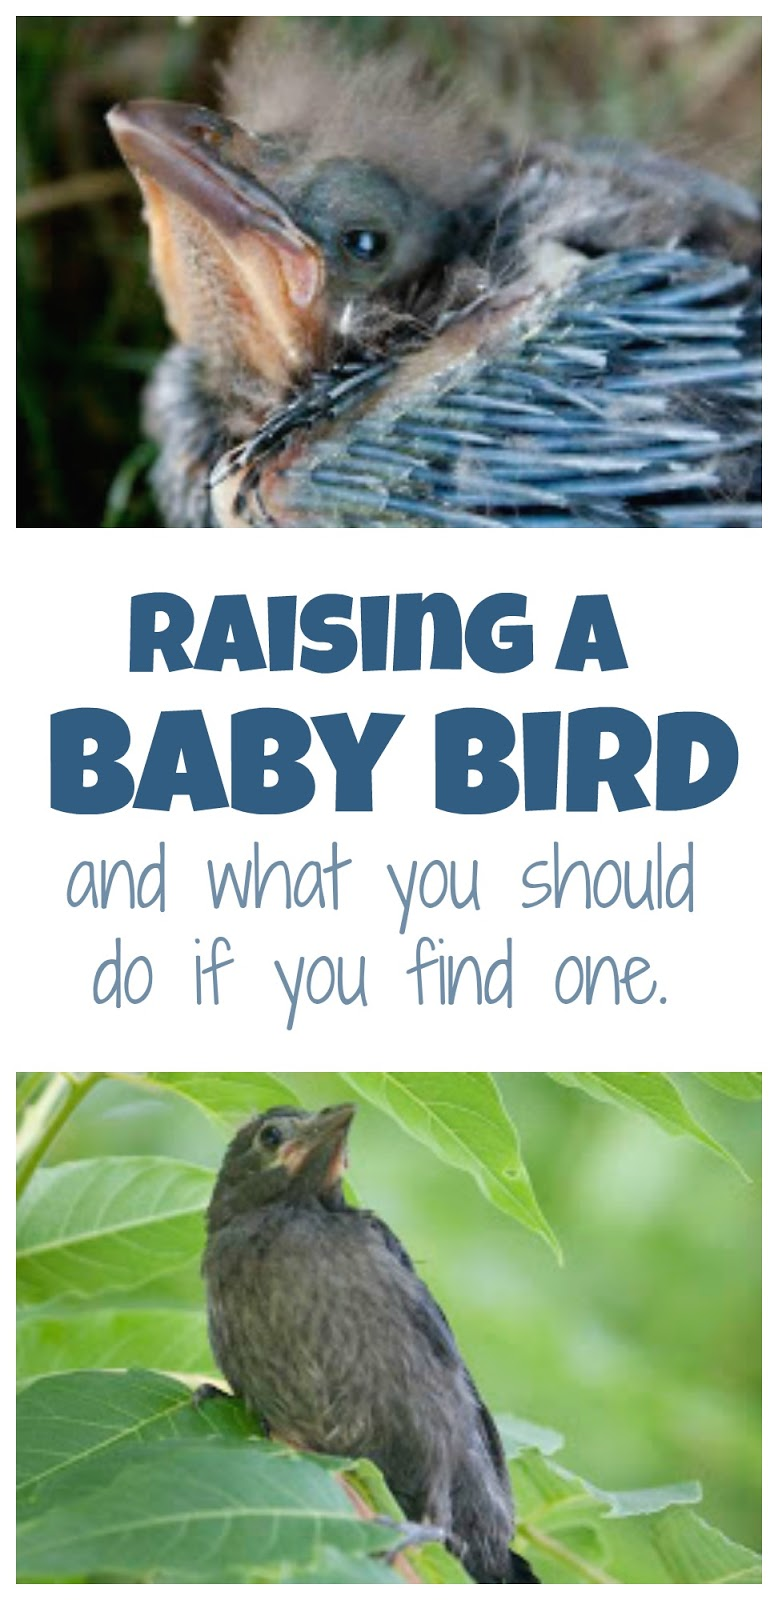 If You Find A Baby Bird And Have Access To Wildlife Center Seek Help Read The End See How Identify Is One In Need Of